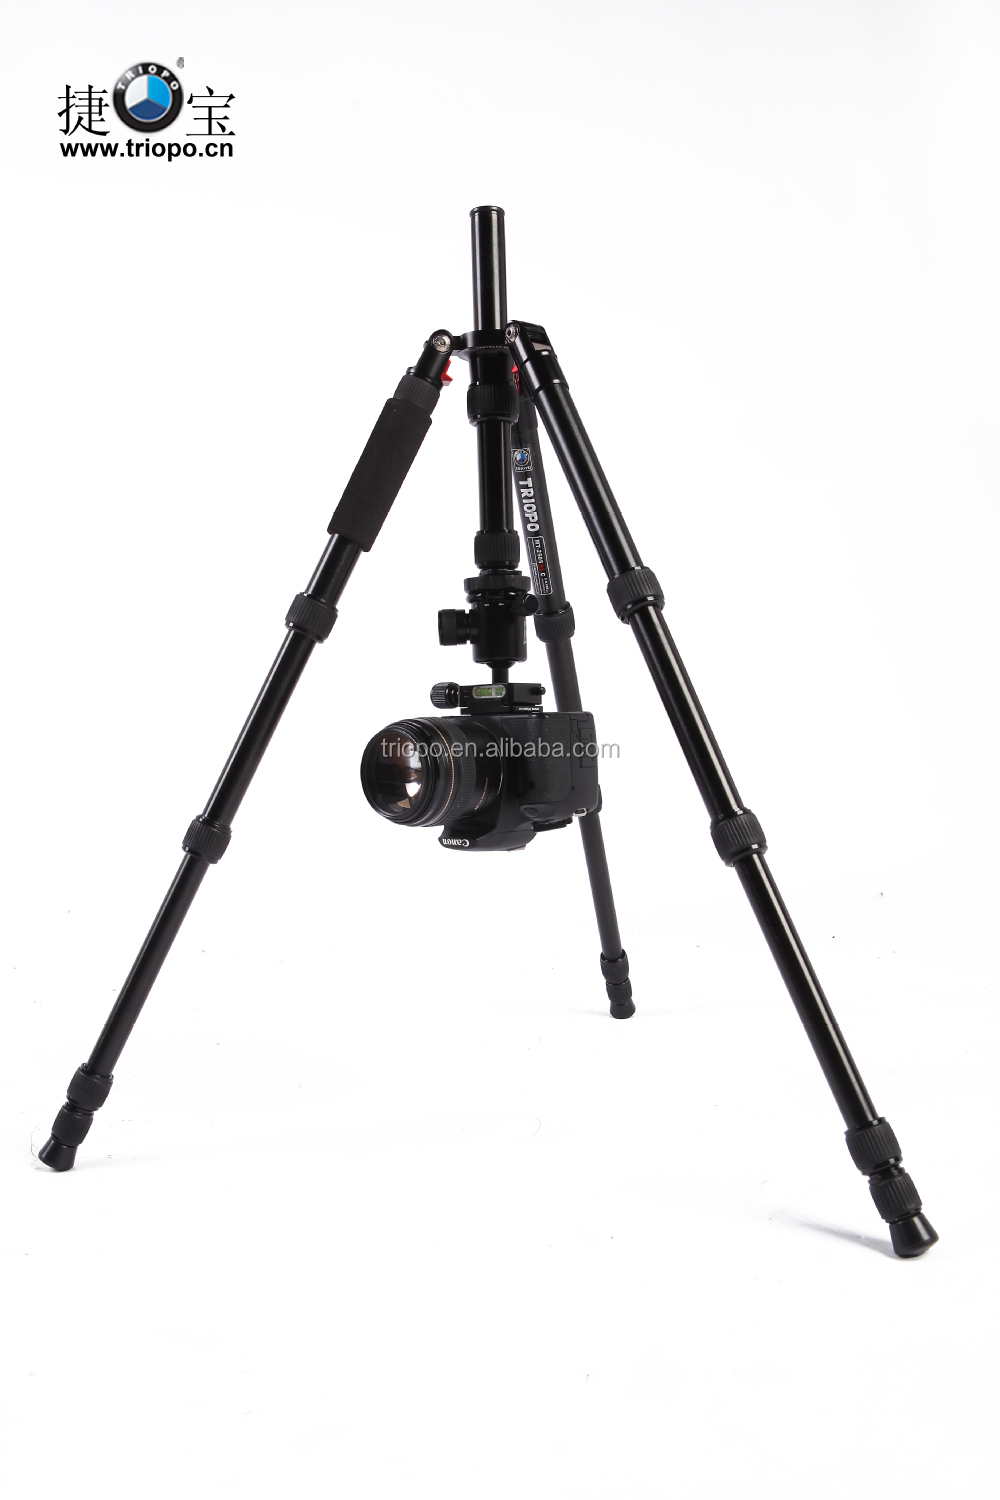 Triopo GT-2505x8.C + B-1 Adjustable Portable Alum Tripod with Ball Head for Canon Nikon DSLR Camera